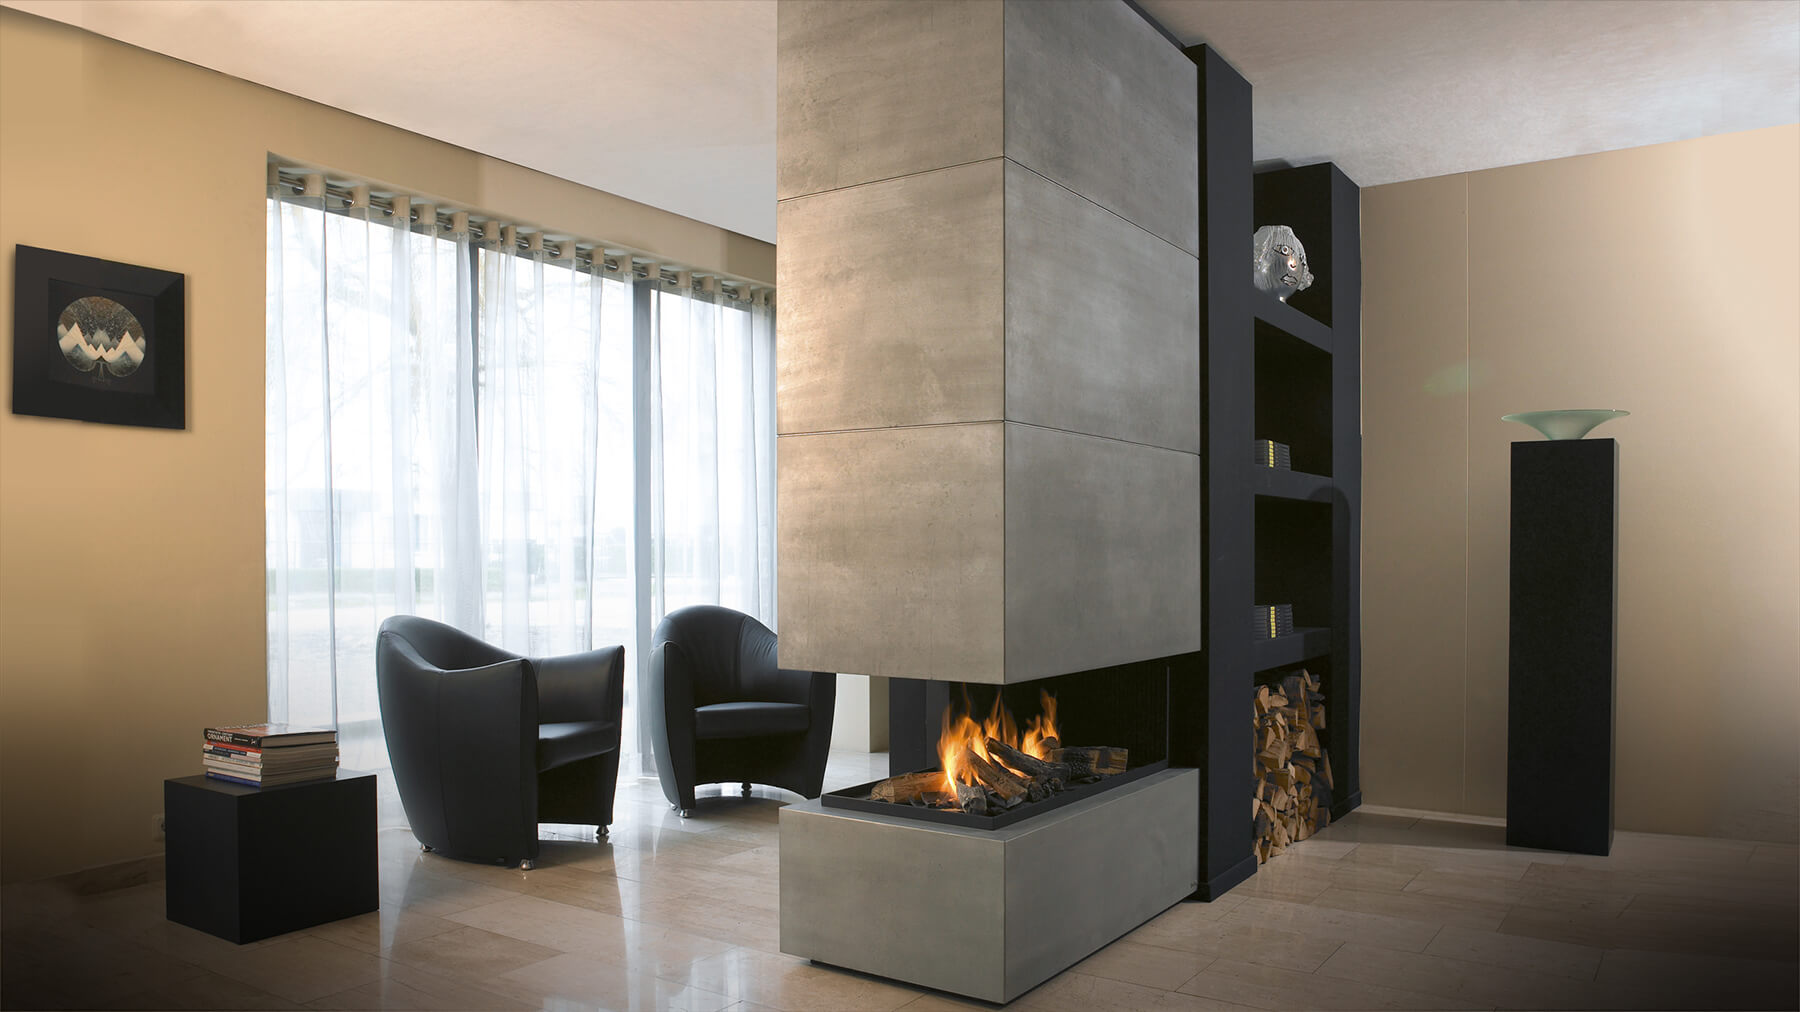 5 Customized Designer Fireplaces That Will Fit Your Style Home